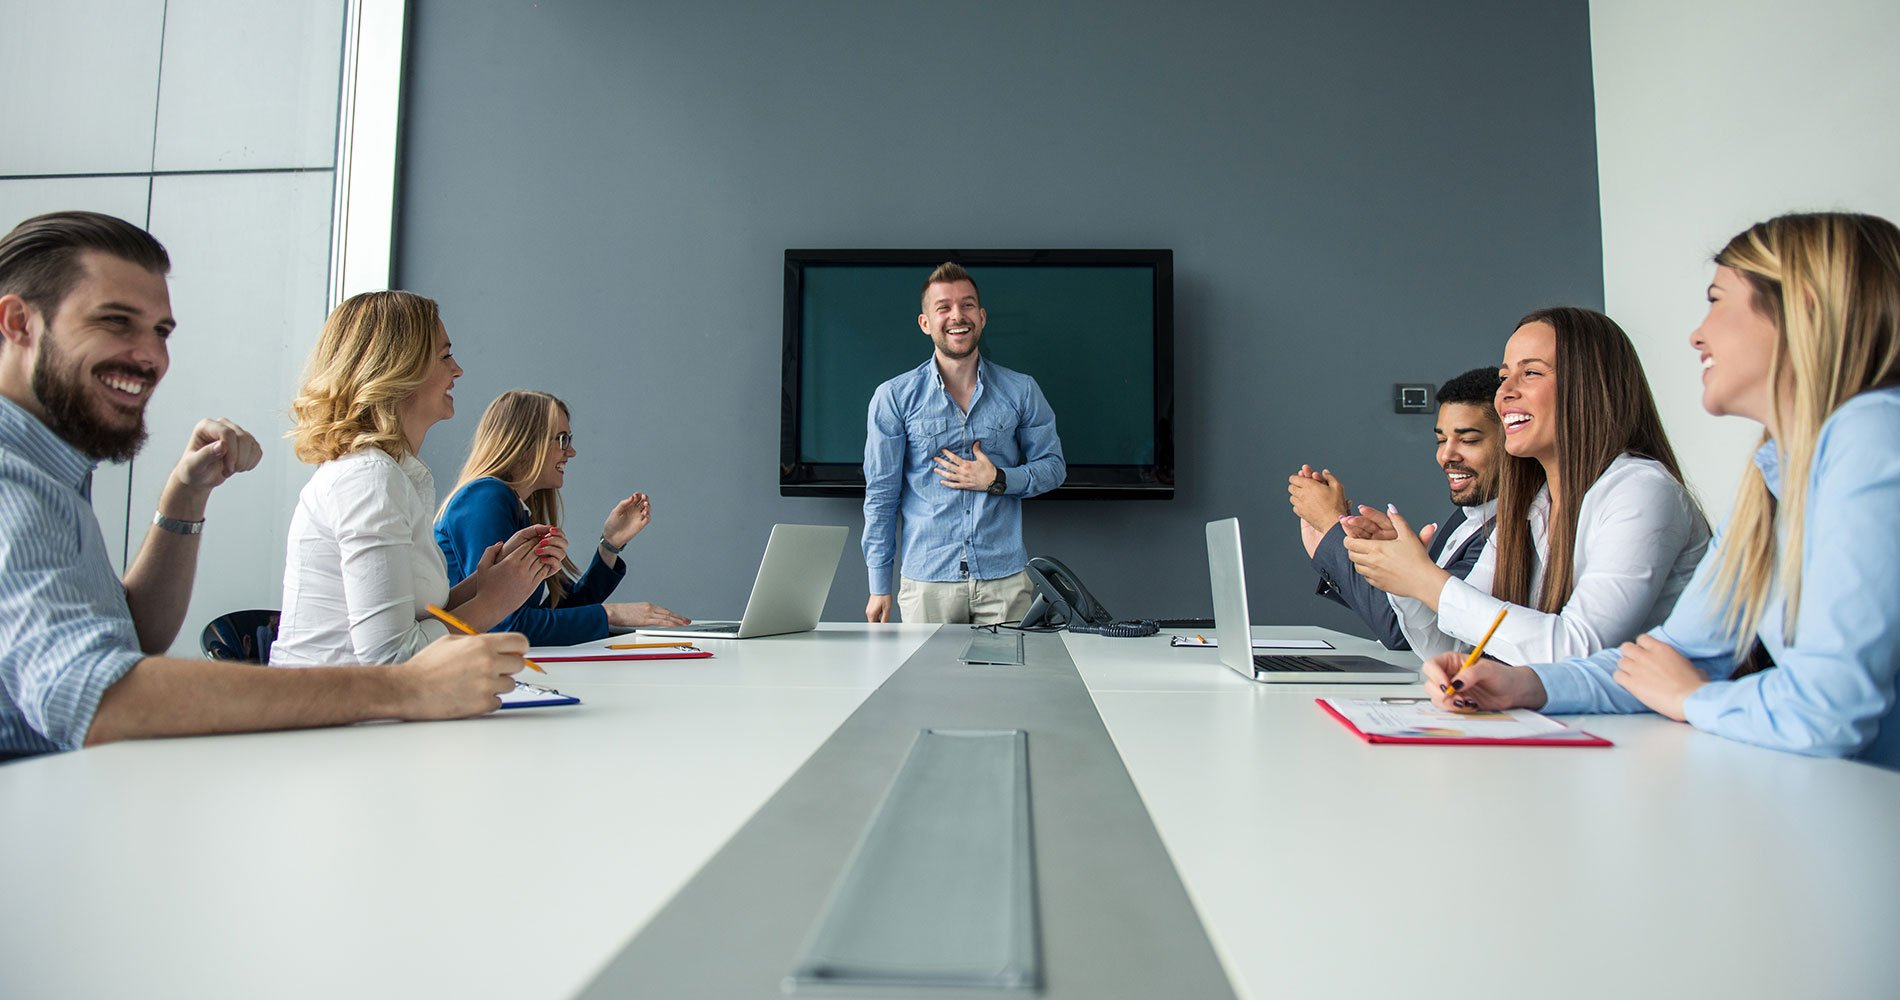 What Makes the Perfect Meeting Room?